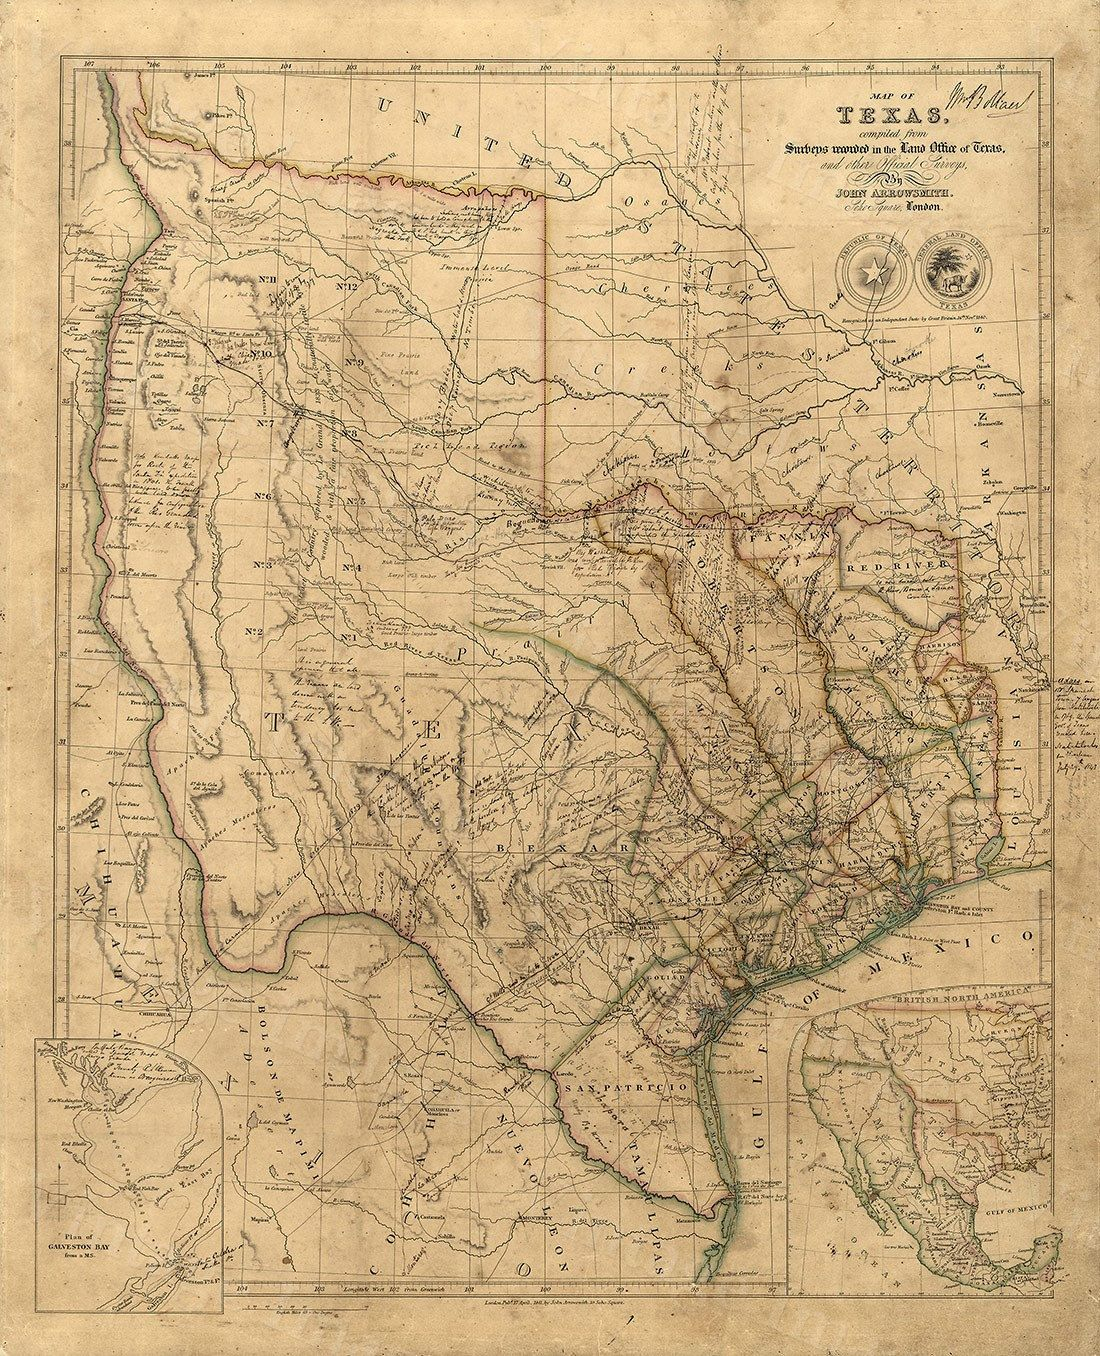 Old Texas Wall Map 1841 Historical Texas Map Antique Decorator Style - Old Texas Maps Prints